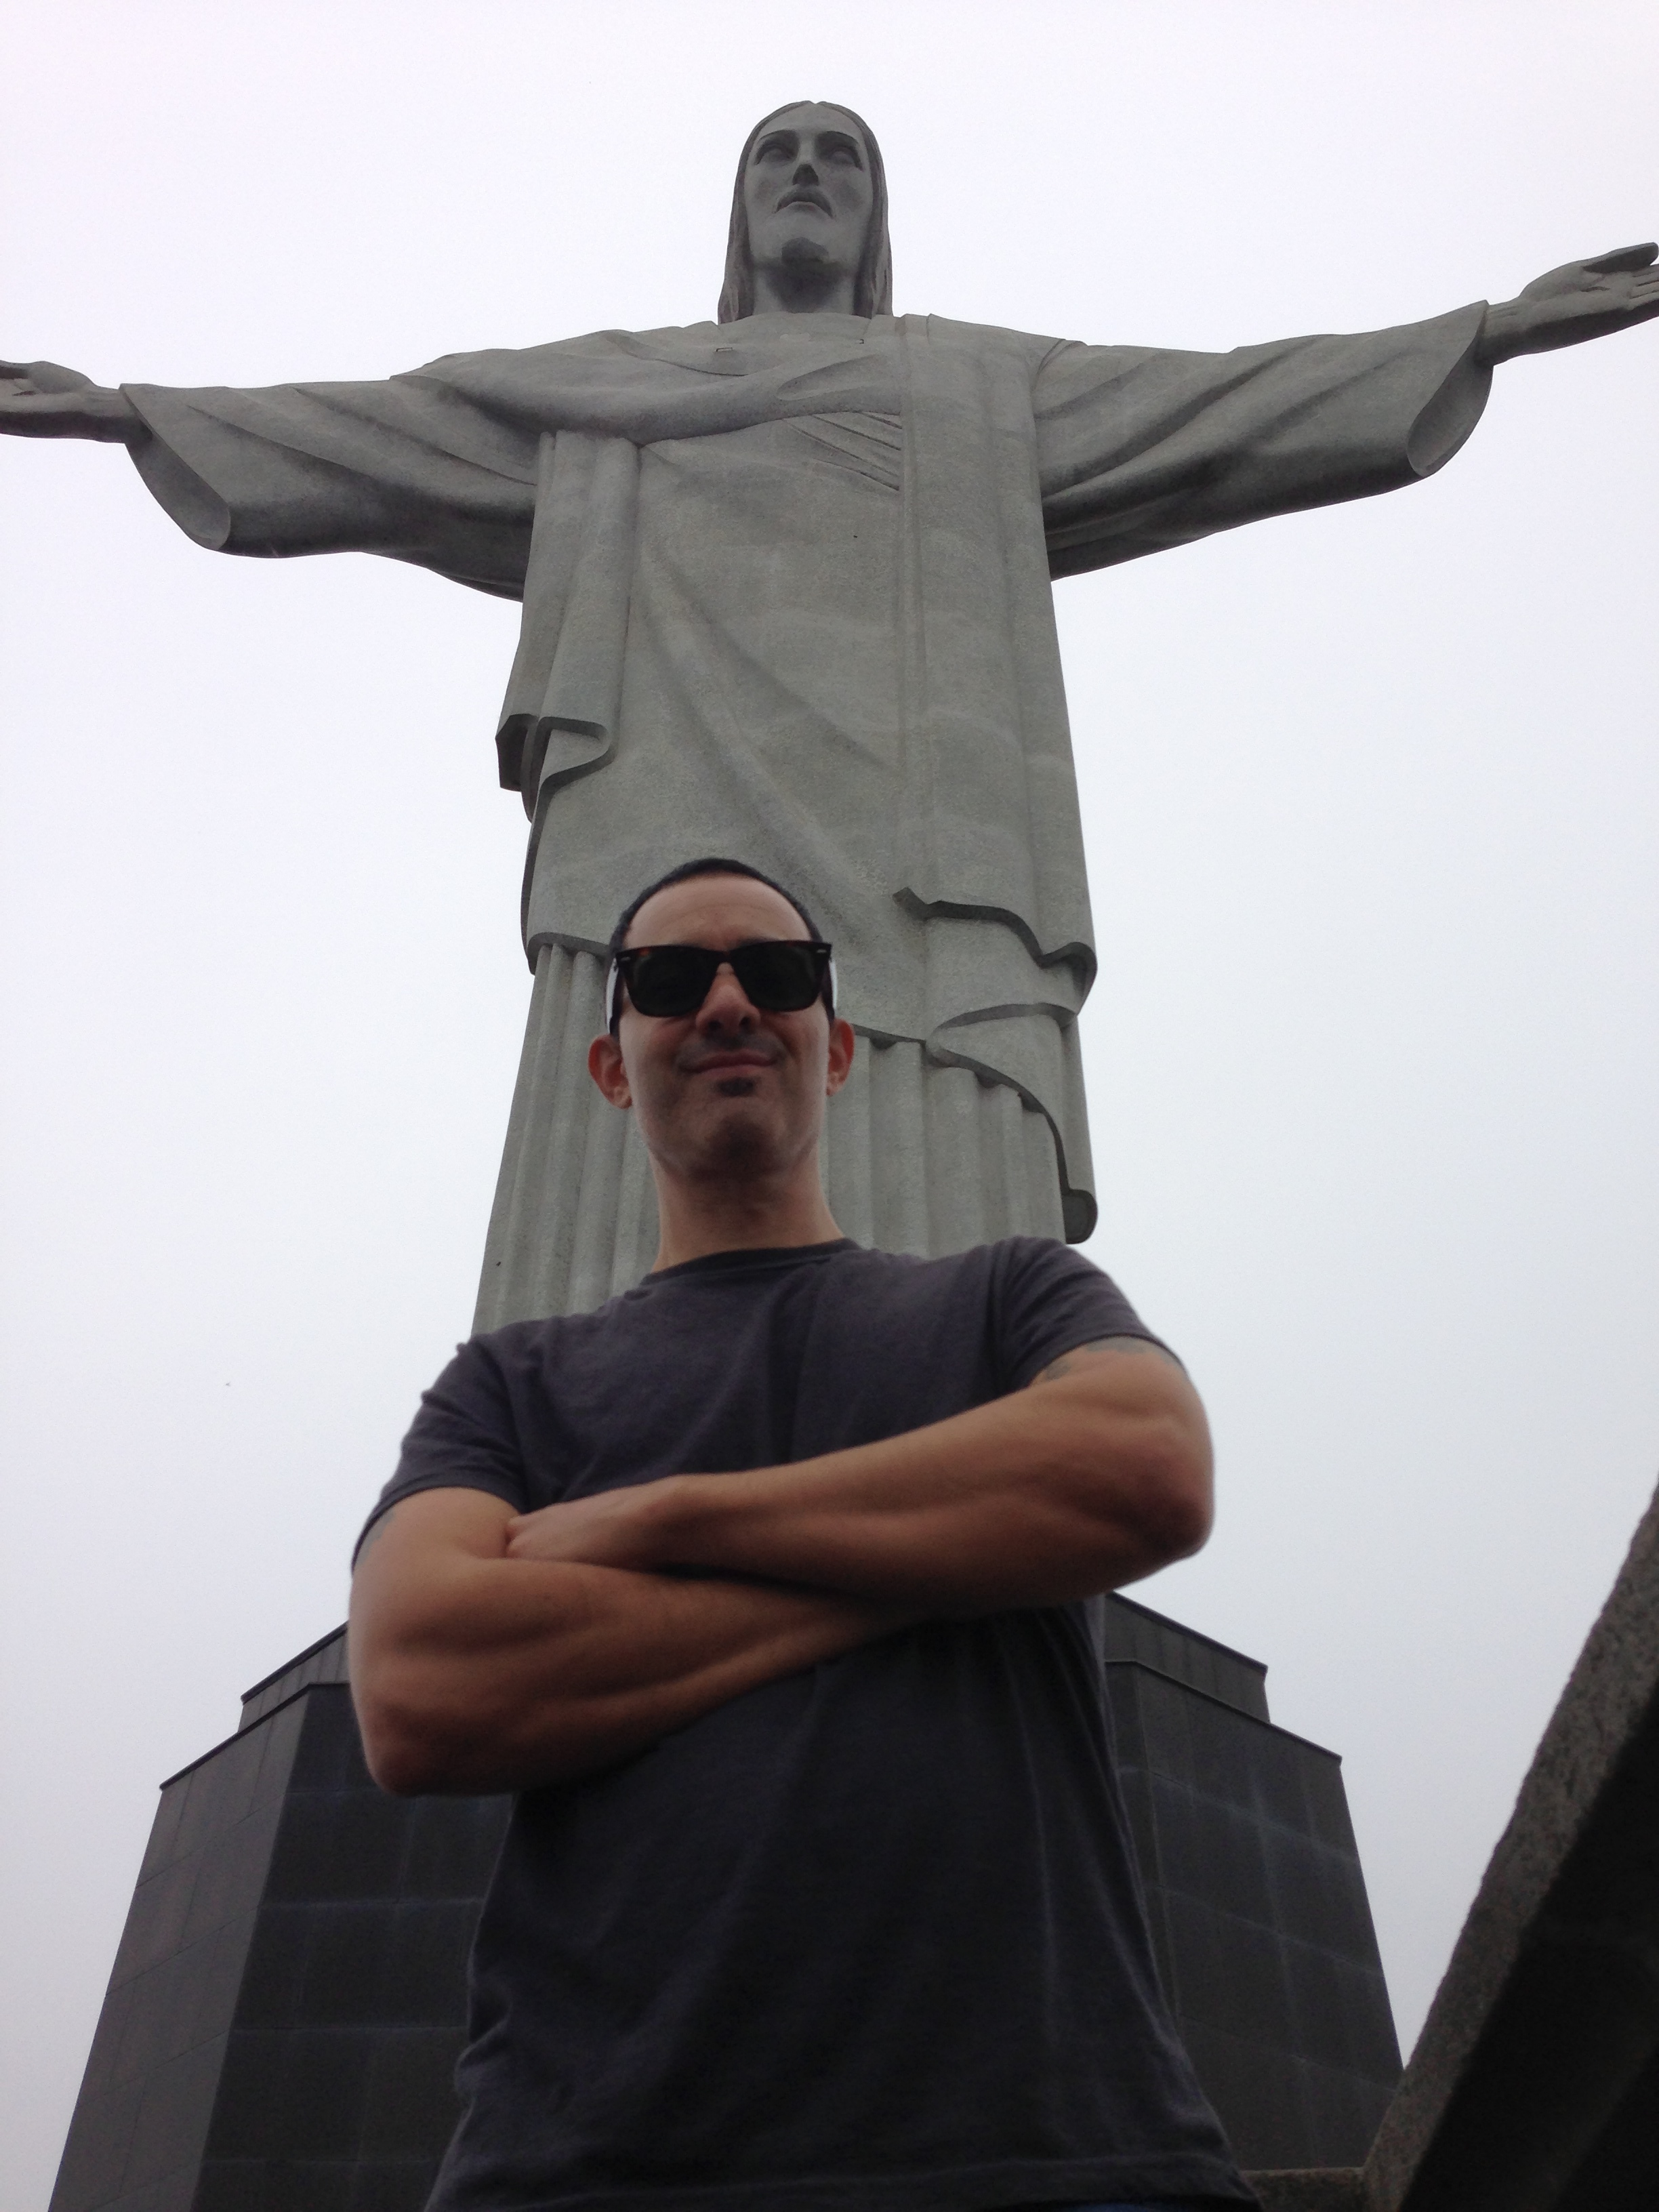 Sightseeing at the Christ the Redeemer stature Rio de Janeiro, Brazil 2013